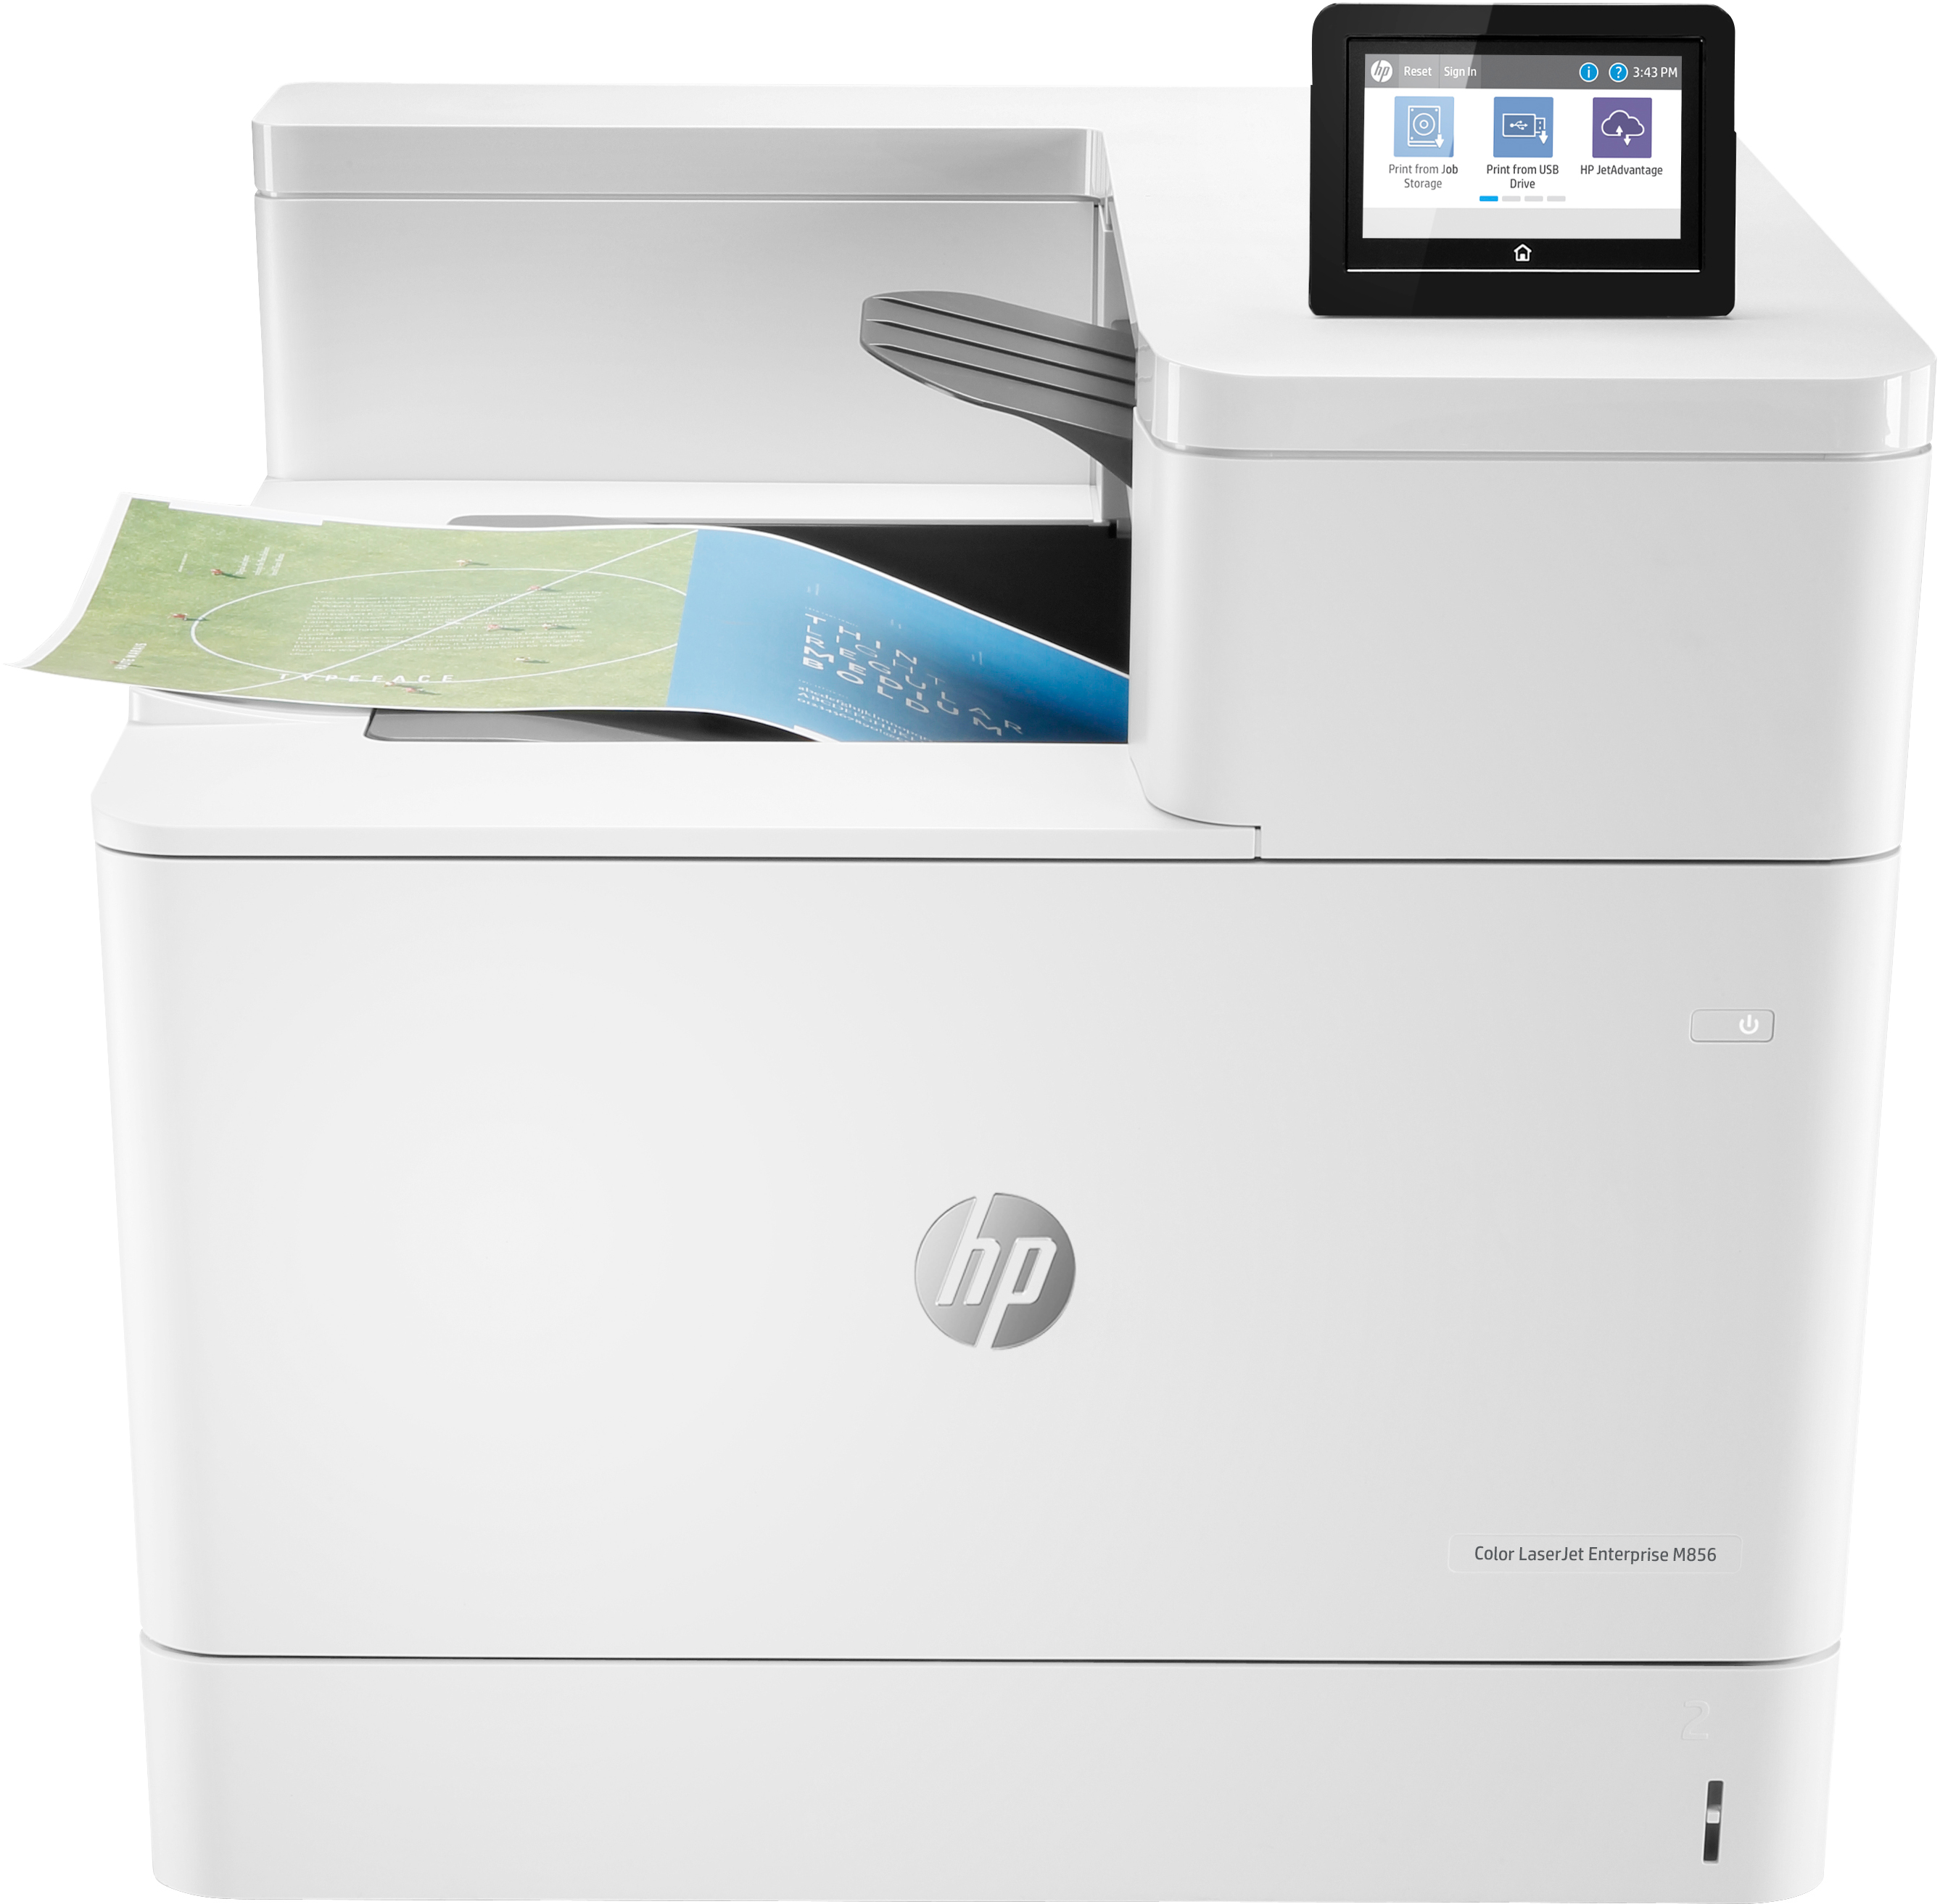 Hp Color Laserjet Ent M856dn Prntr T3u51a#b19 - WC01